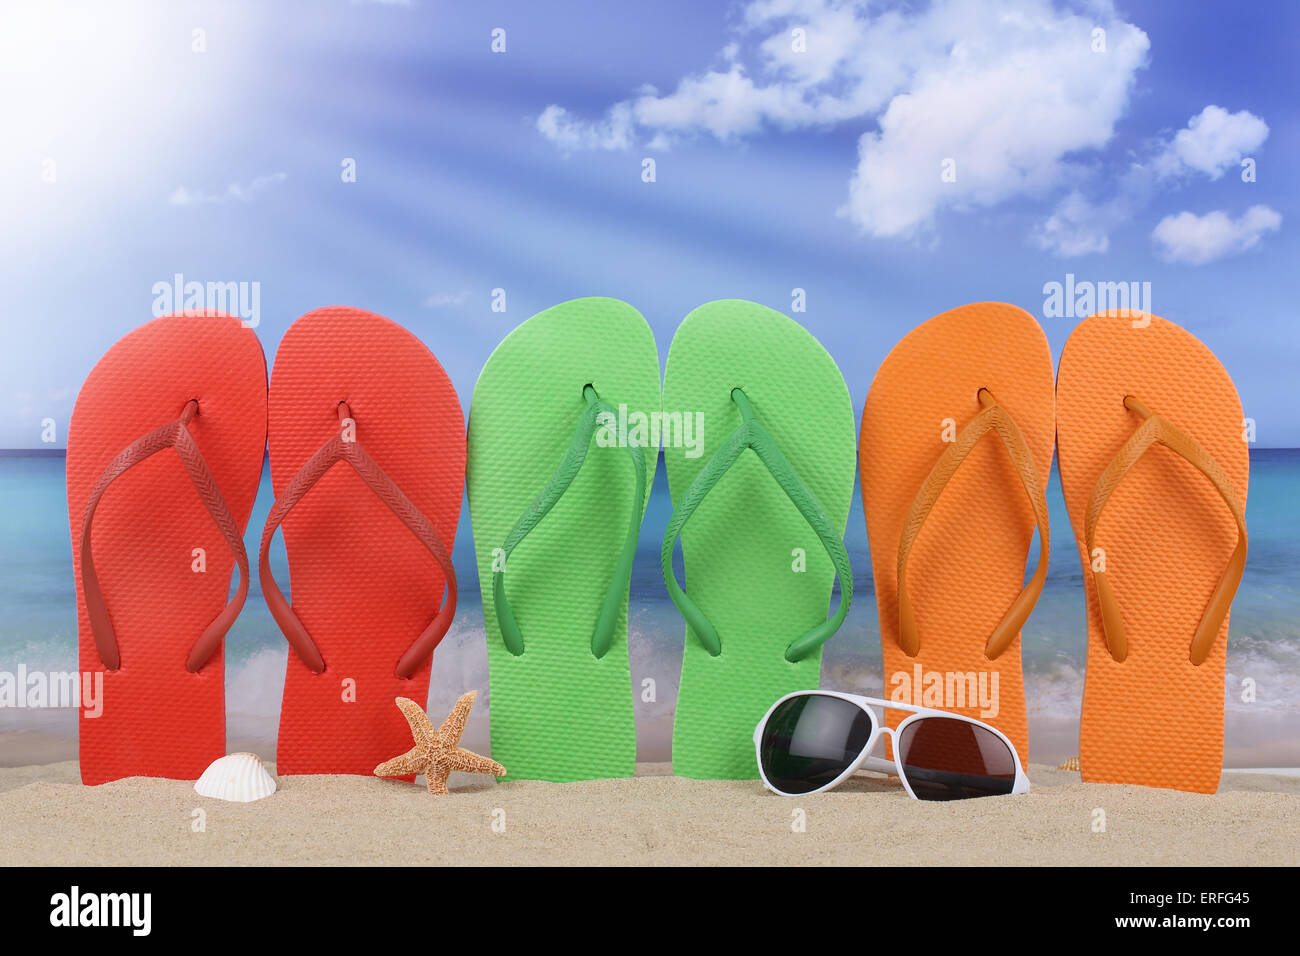 Beach scene with flip flops sandals in summer on vacation, holidays - Stock Image